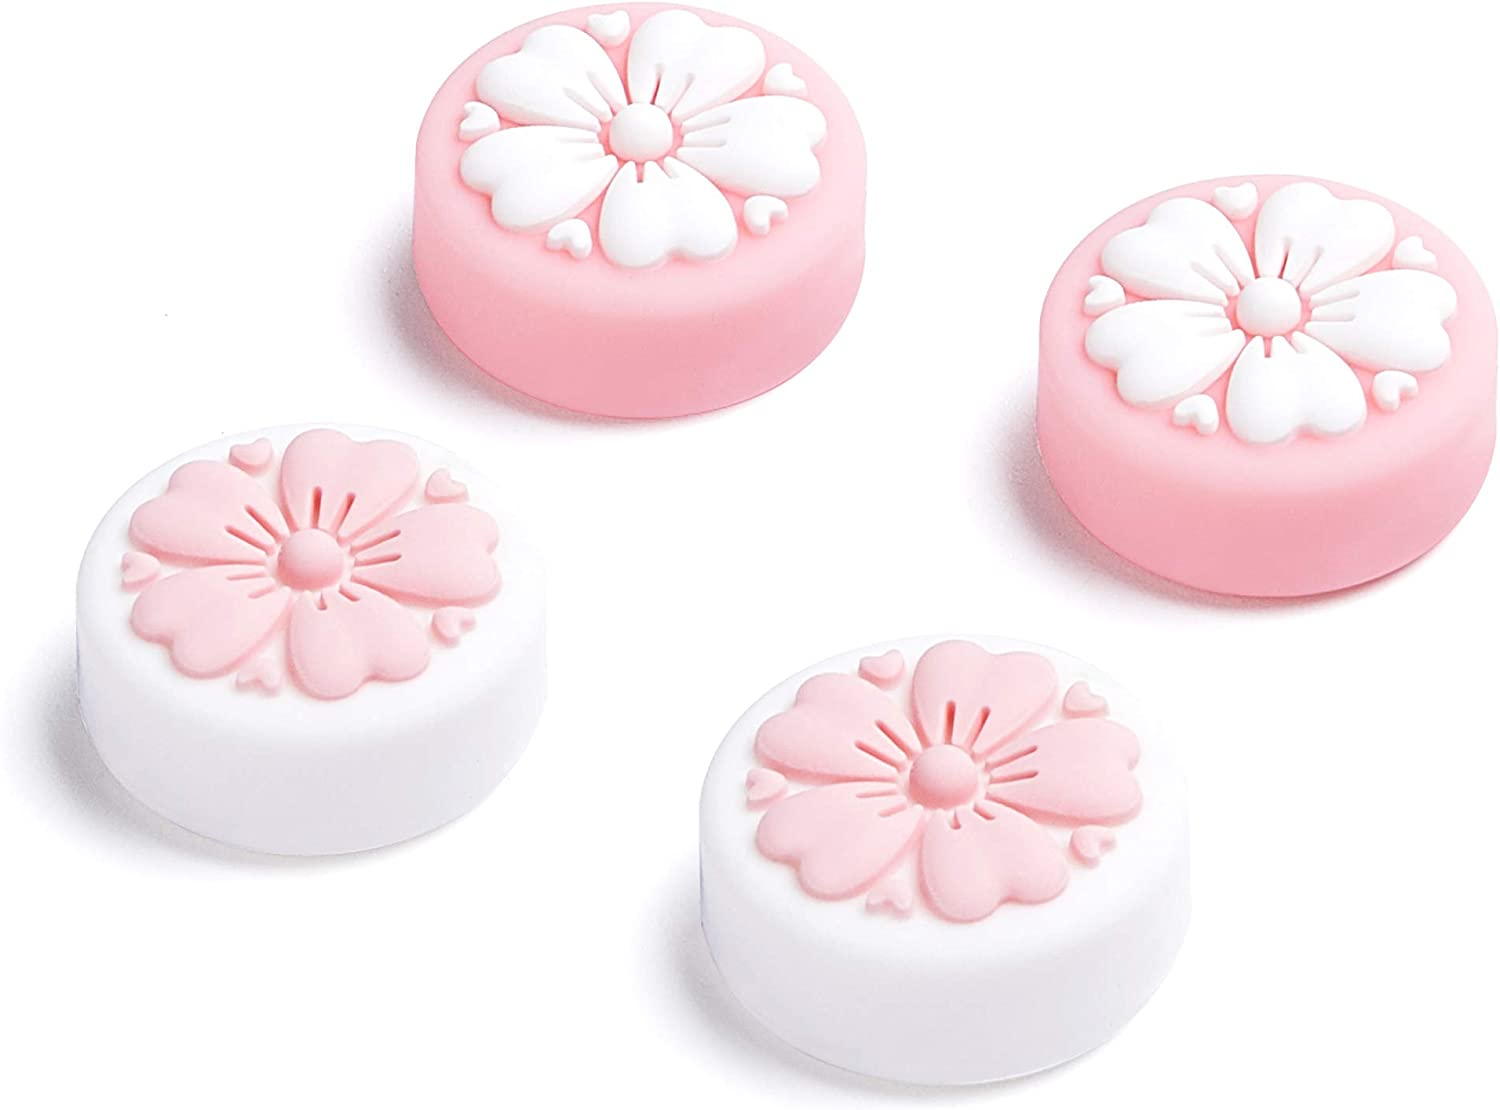 LeyuSmart New Upgrade Sakura Flower Thumb Grip Compatible with Nintendo Switch & Lite, Joystick Thumb Cap, Silicone Thumb Stick Cover Skin for Joy-Con Controller (Pink&White)